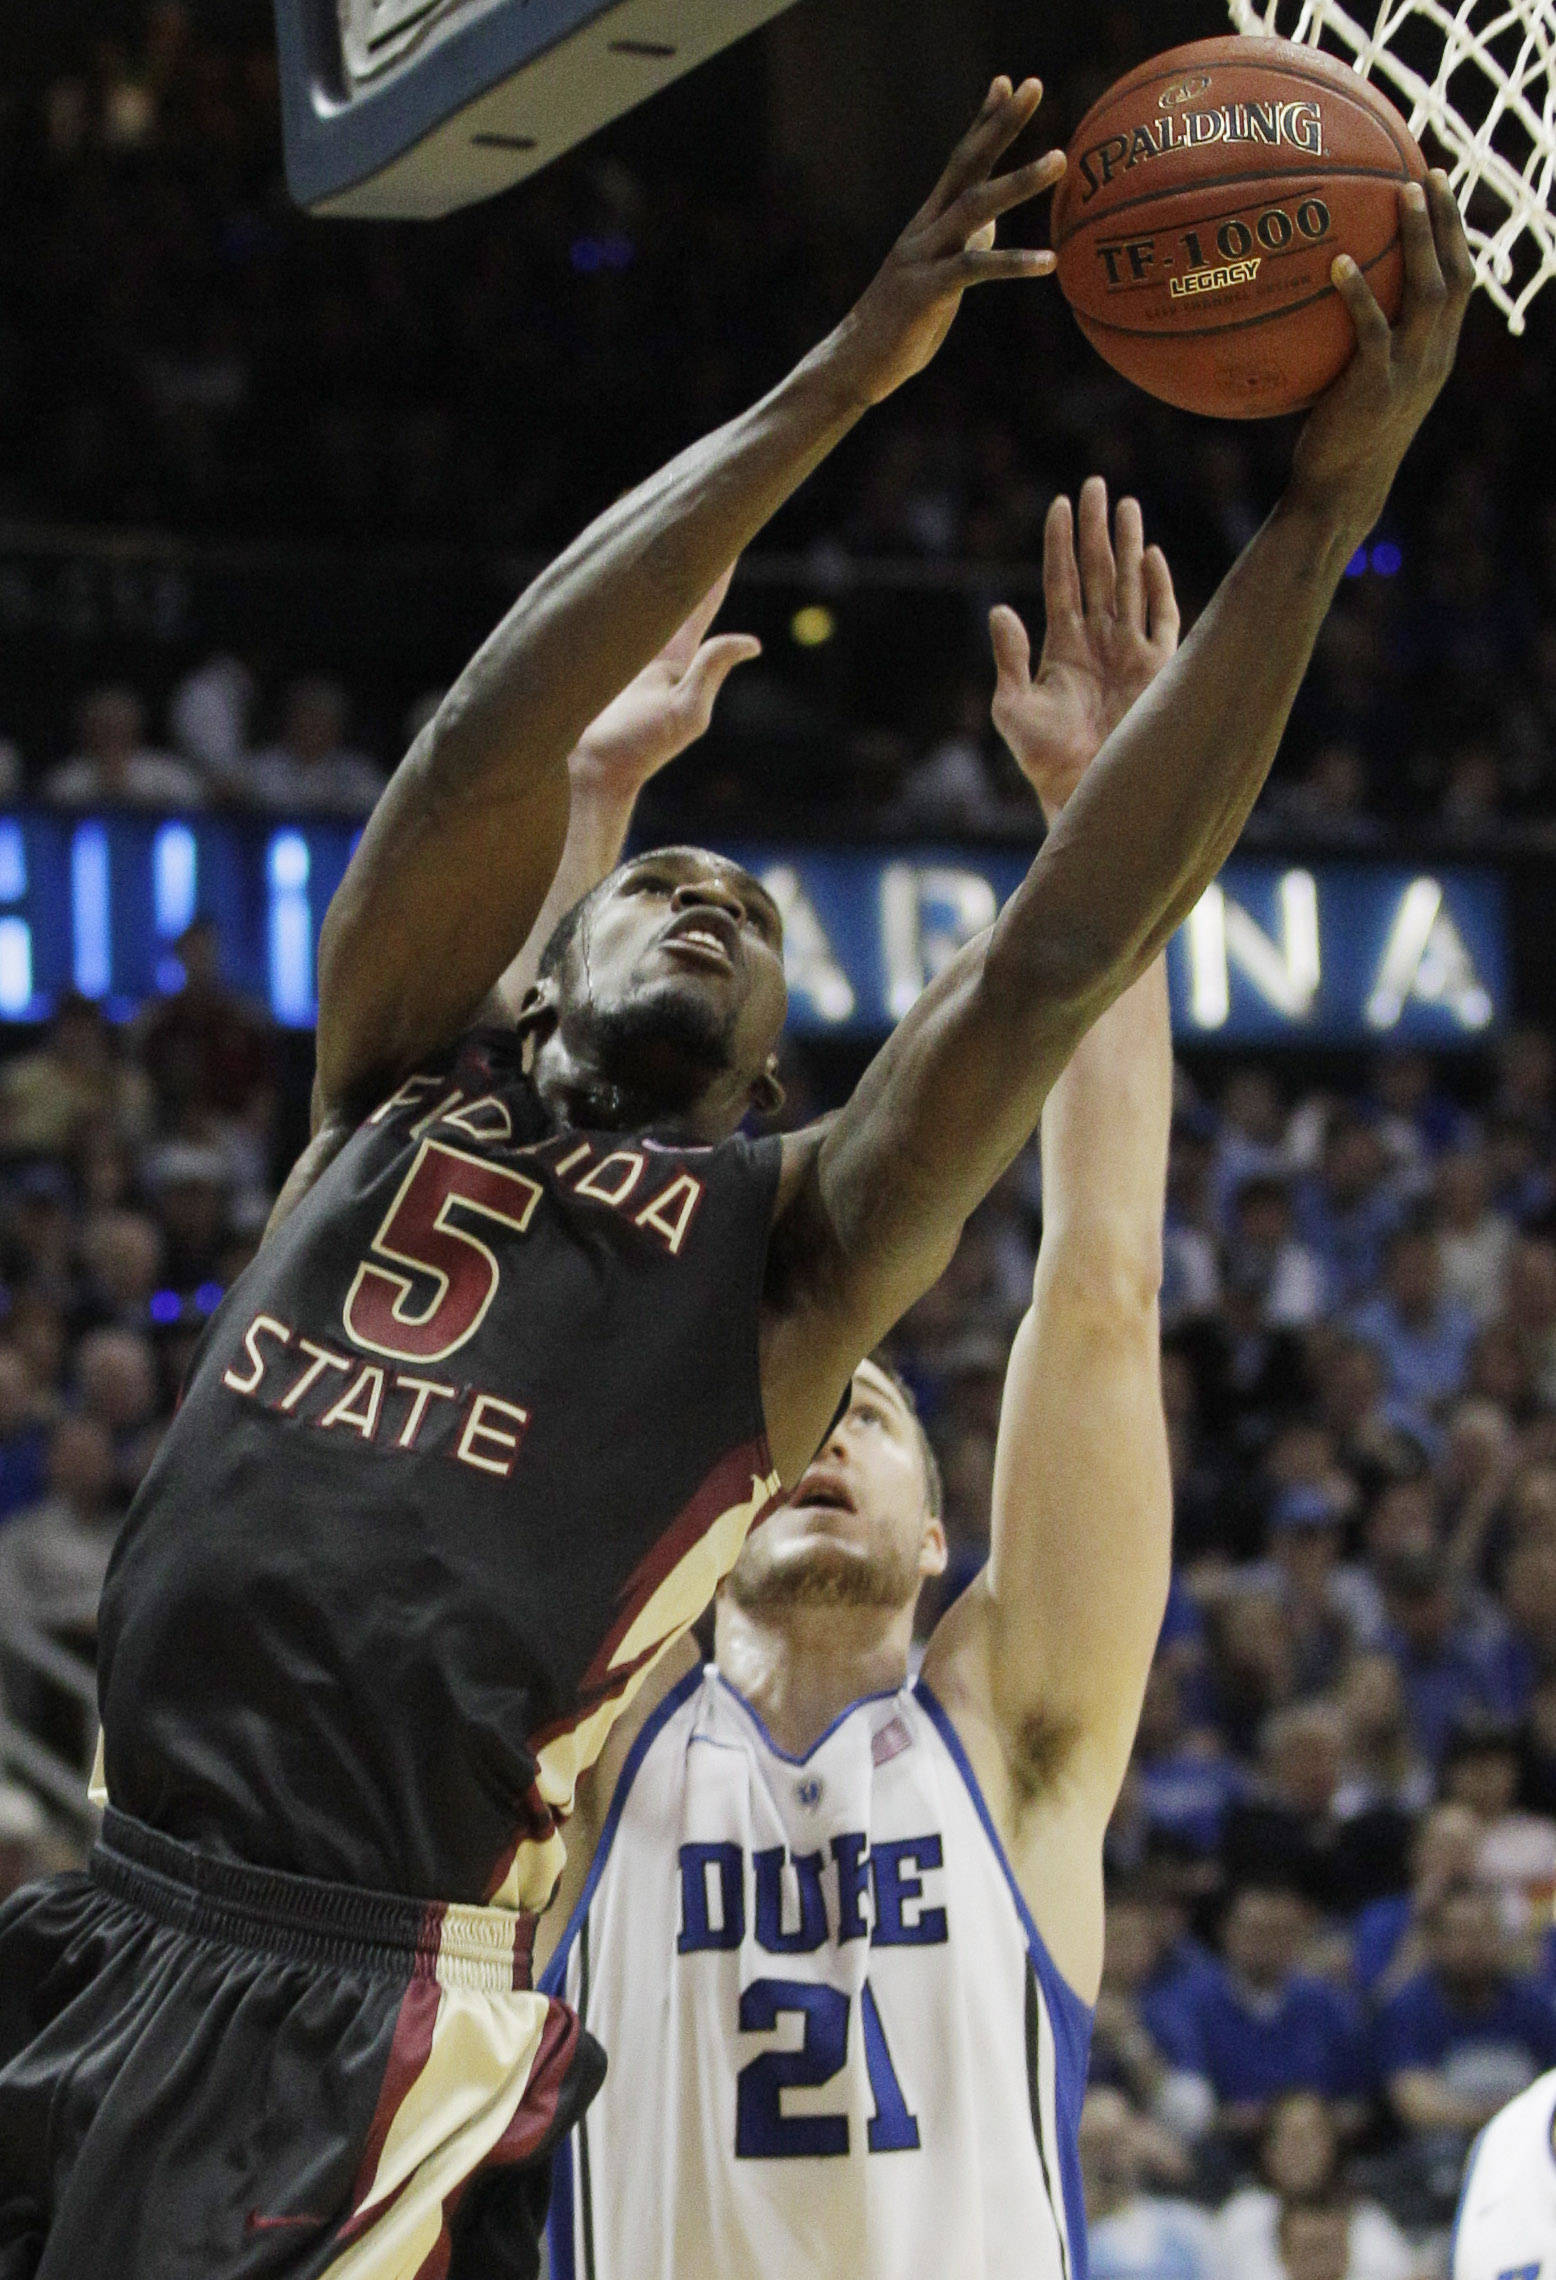 Florida State forward Bernard James (5) works against Duke forward Miles Plumlee (21) during the first half of an NCAA college basketball game in the semifinals of the Atlantic Coast Conference tournament, Saturday, March 10, 2012, in Atlanta. (AP Photo/Chuck Burton)